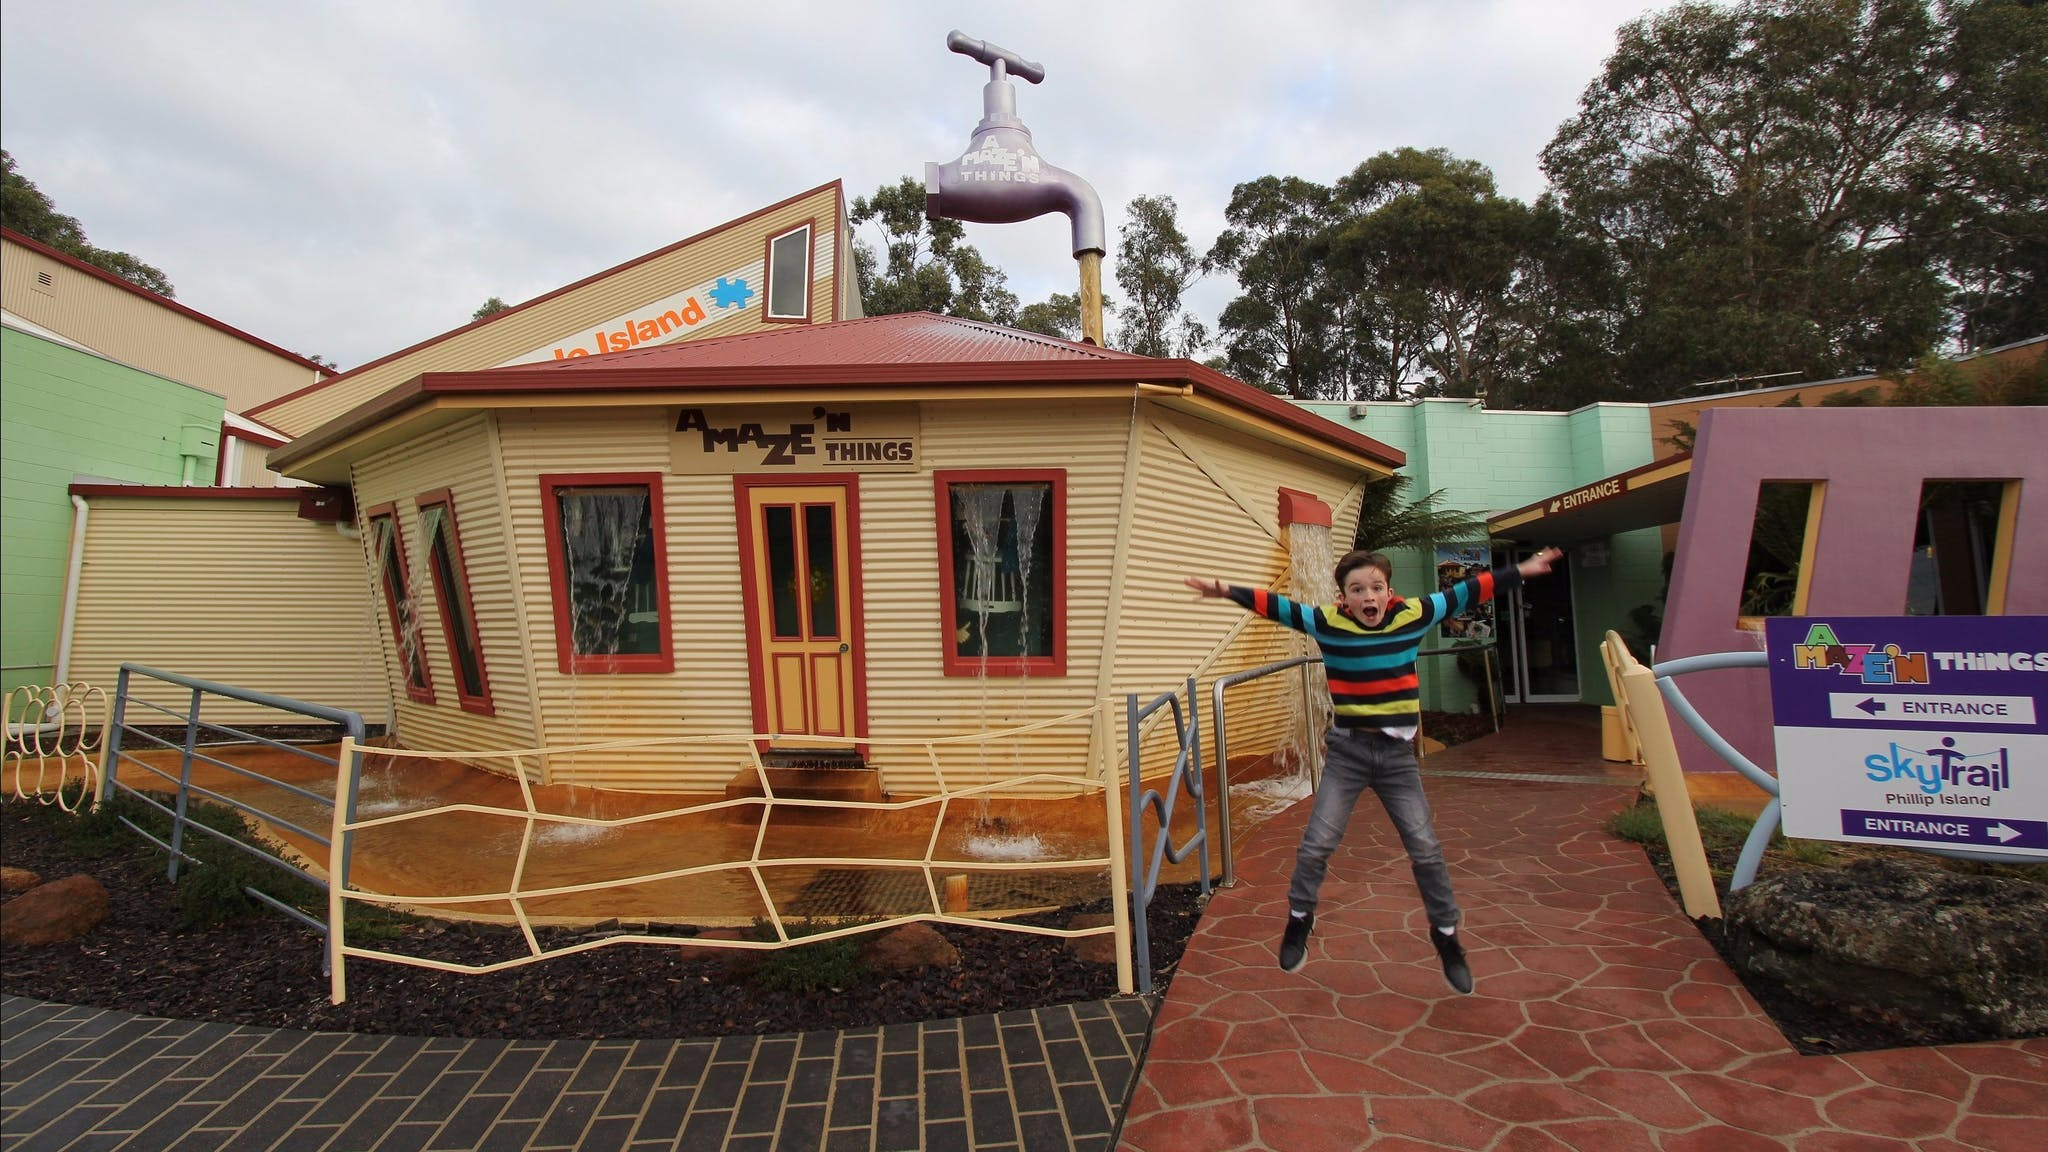 A Maze N Things Attraction Phillip Island Victoria